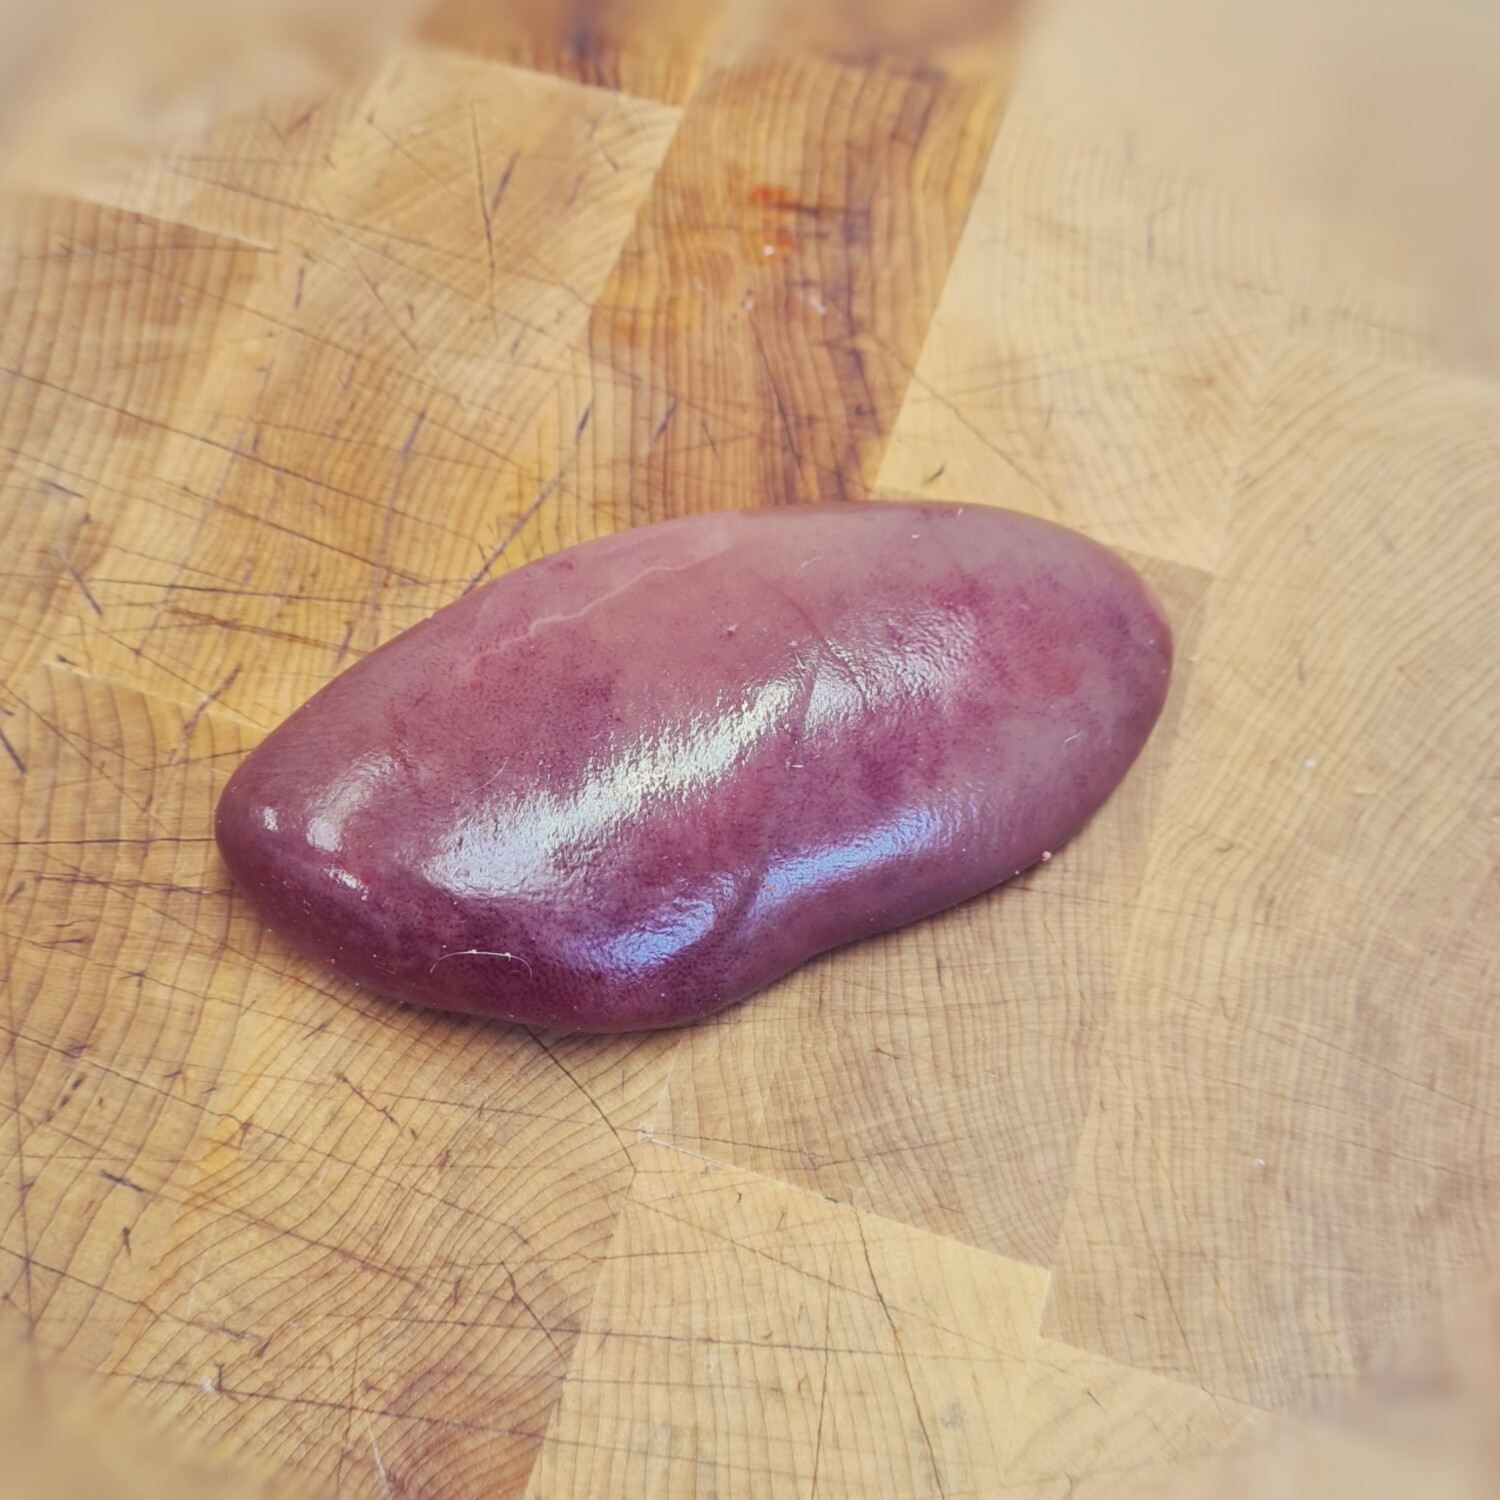 Rare Breed Pigs Kidney